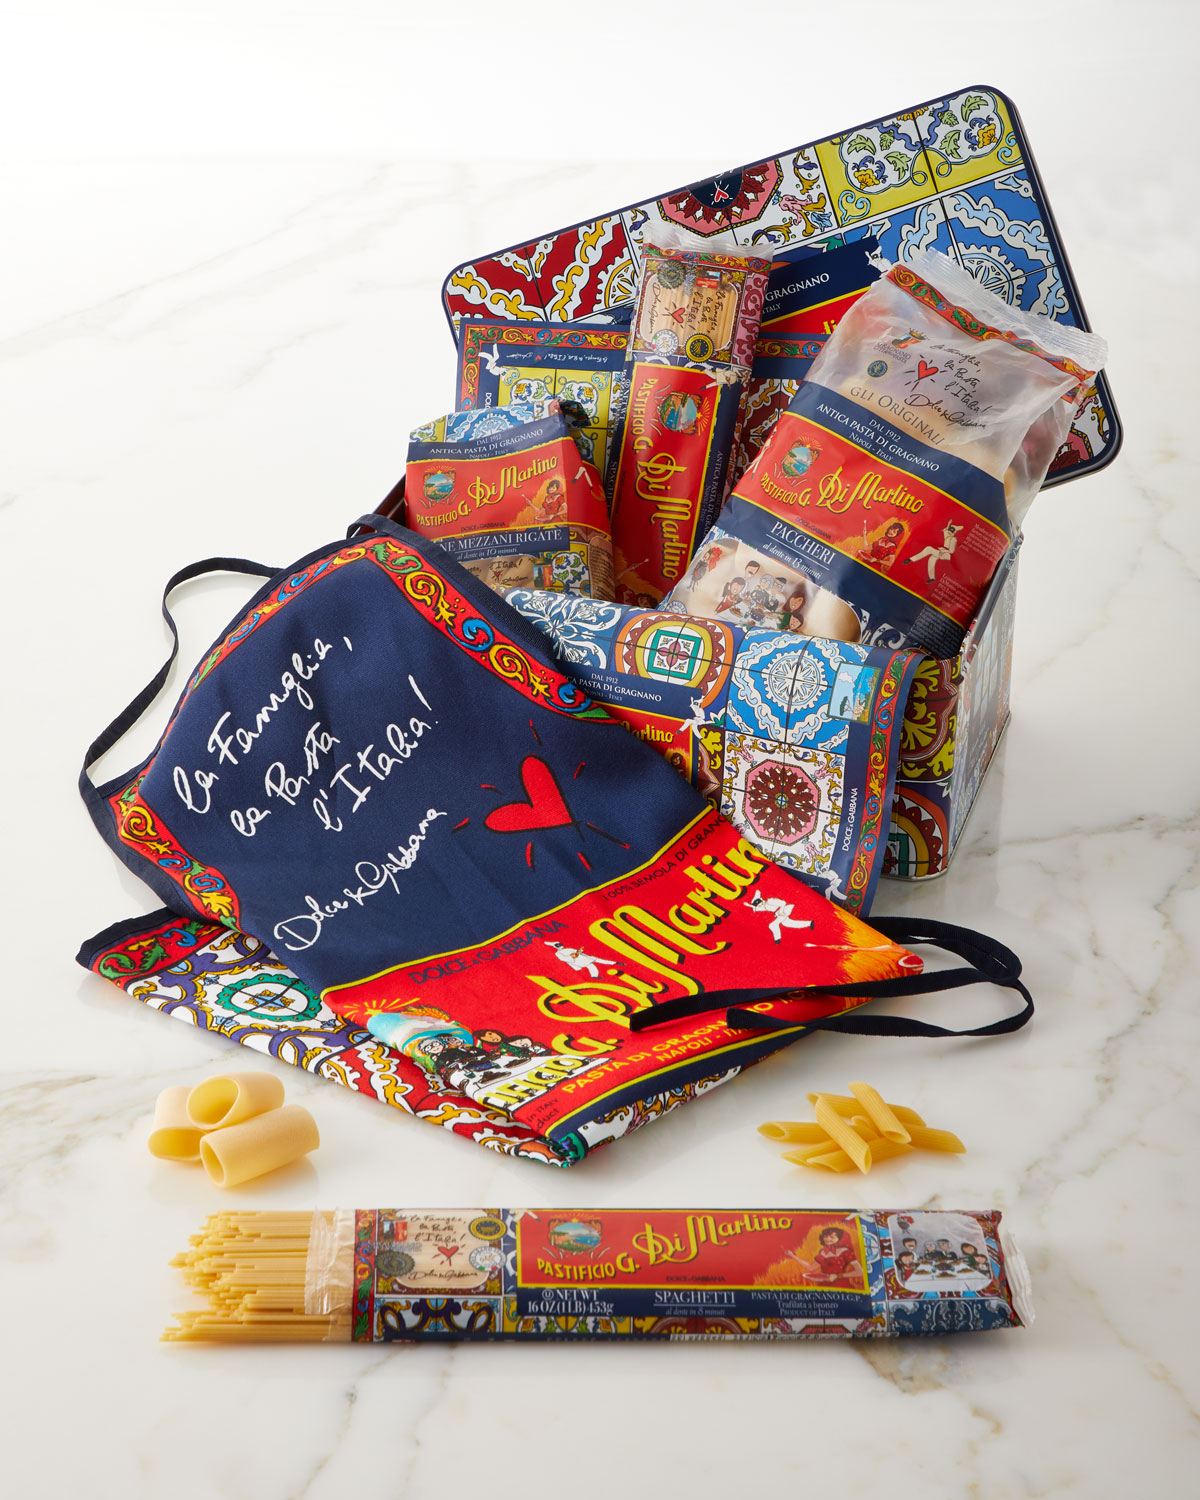 Wedding Gift Stores Nyc: Di Martino Dolce & Gabbana Pasta & Apron Tin Box Set